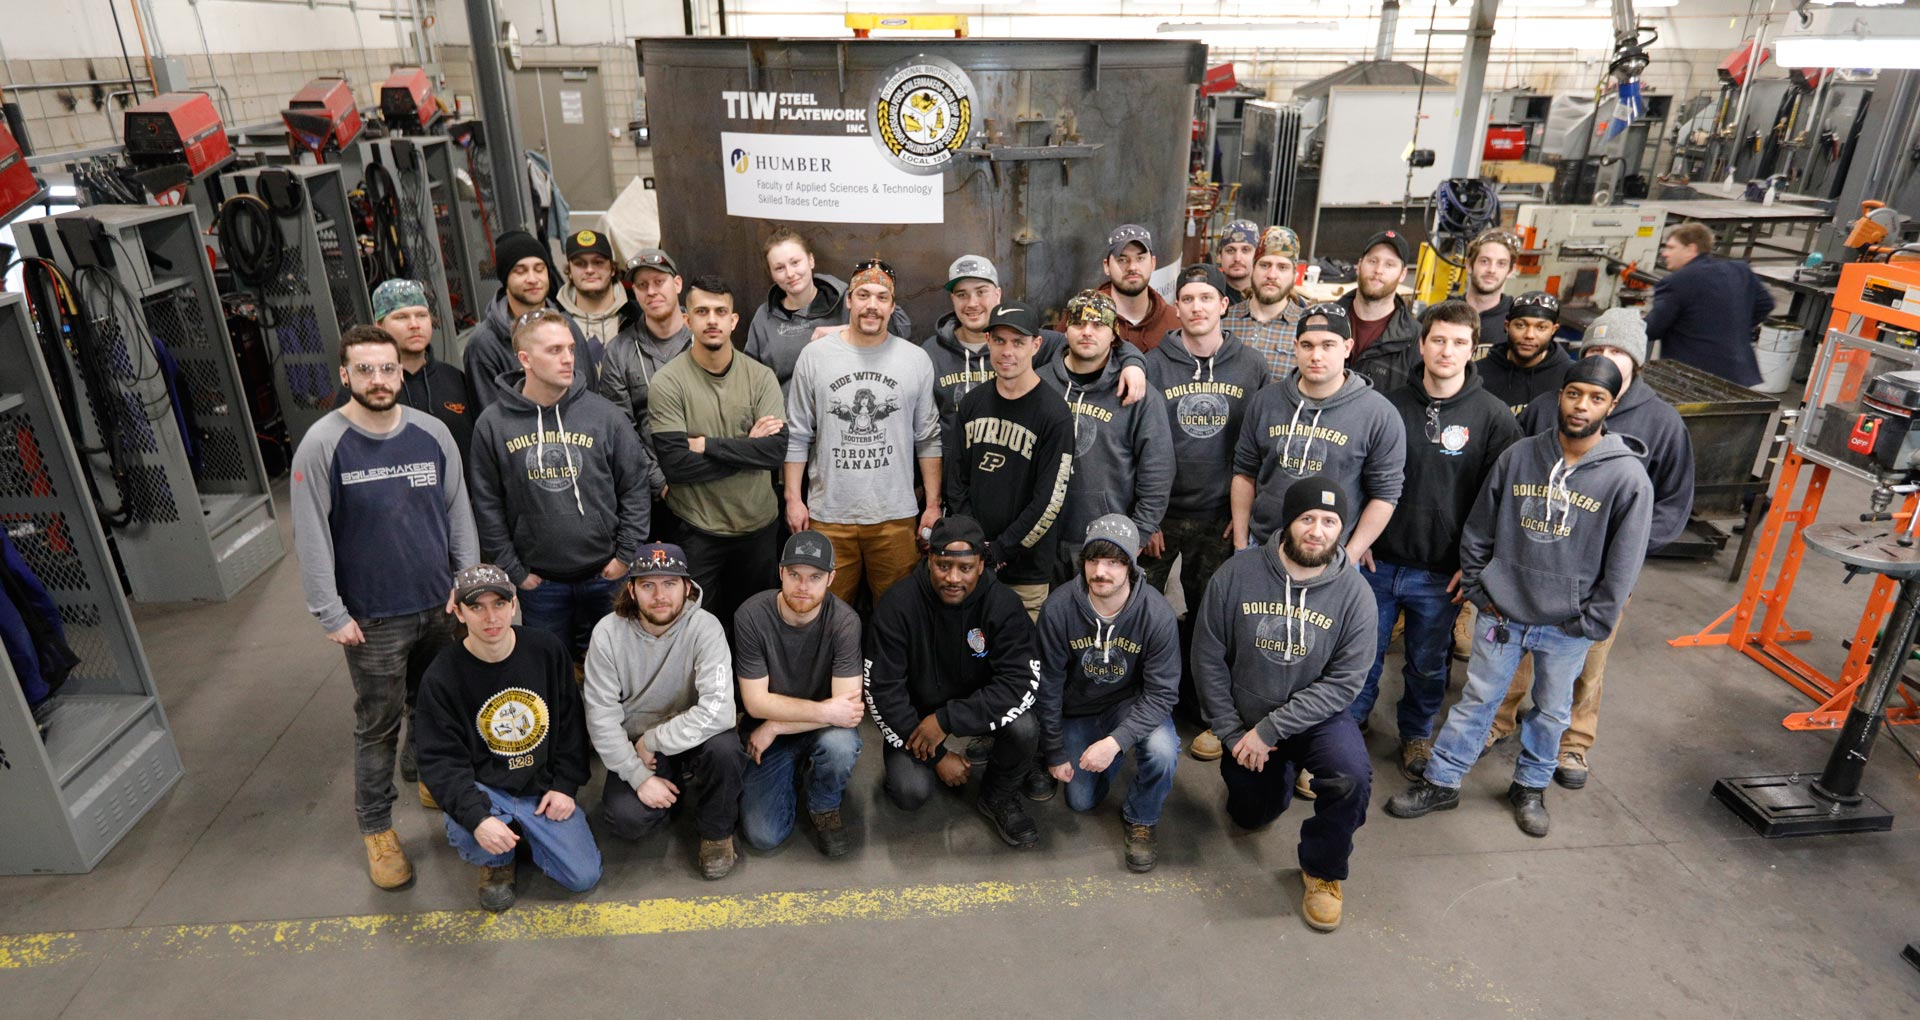 humber-college-january-2020-advanced-boilermaker-class-group-shot-tiw-steel-platework-donated-tank-1